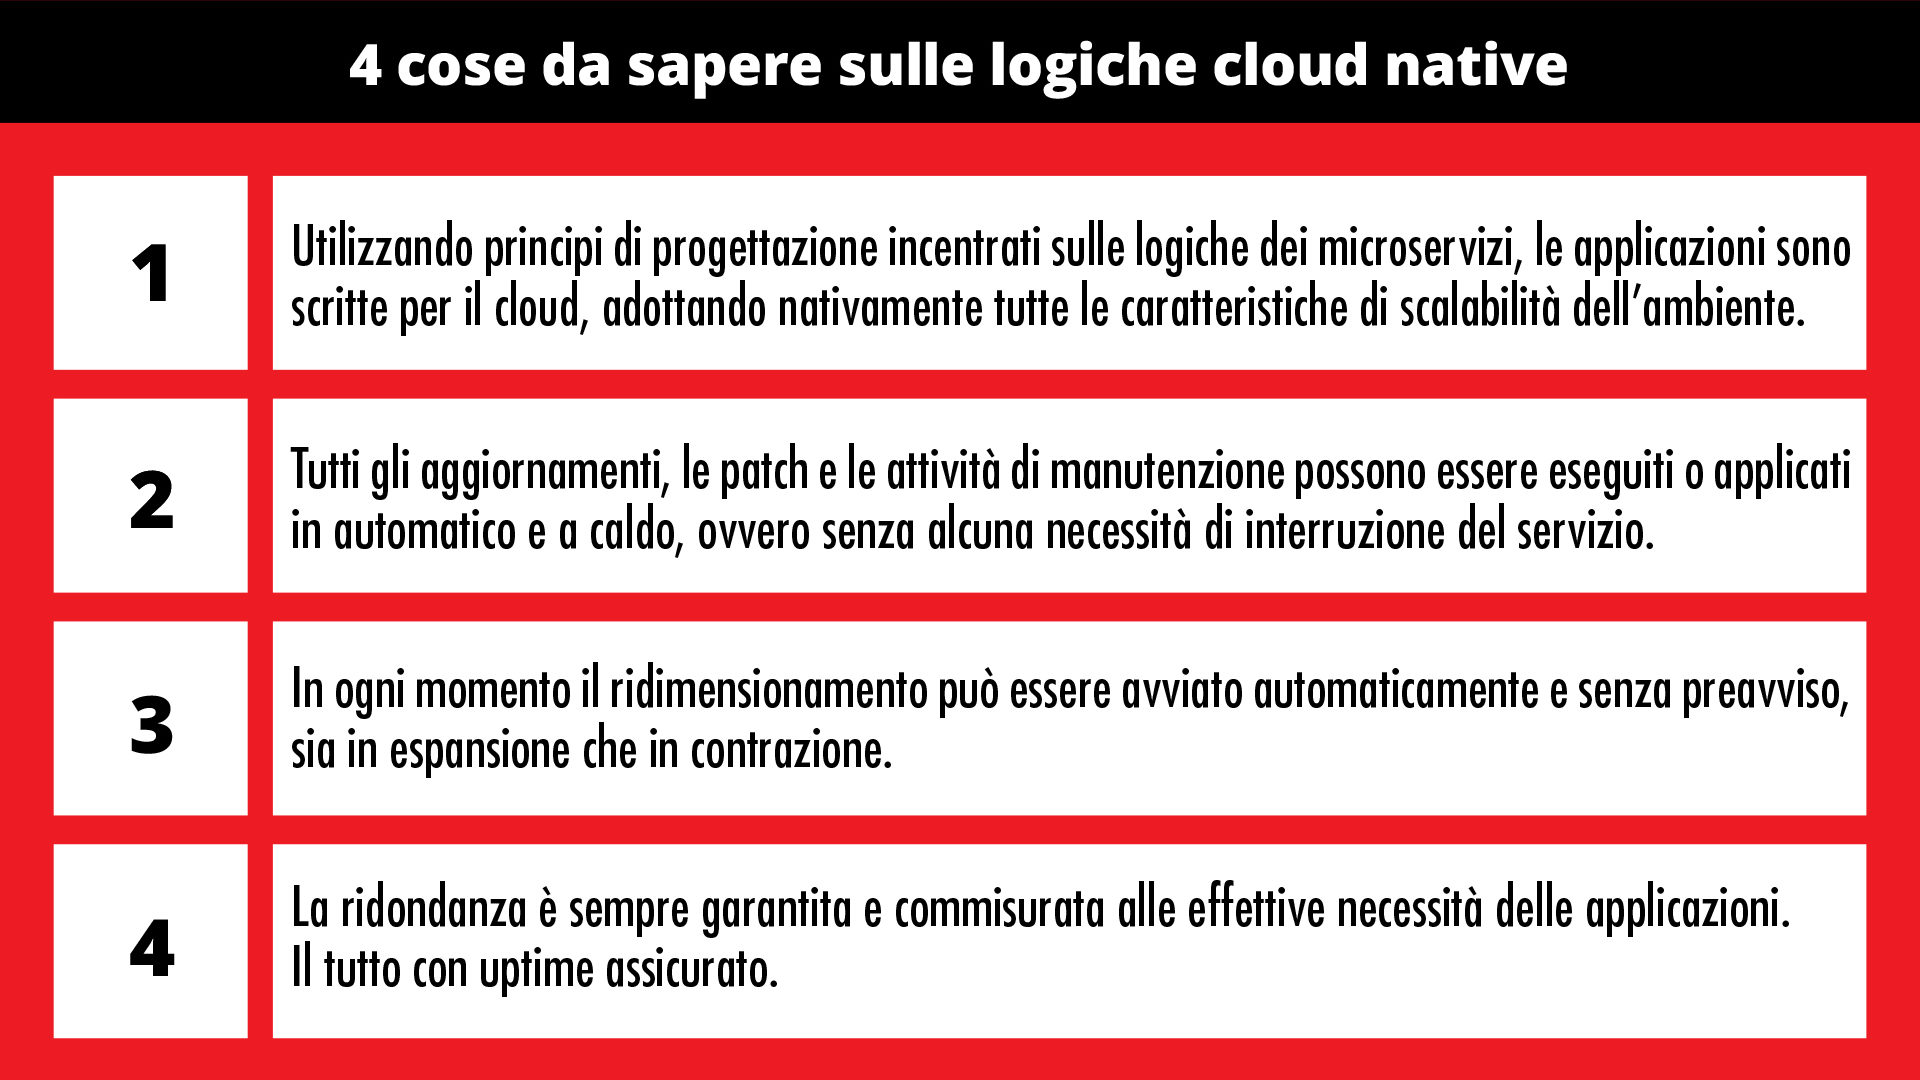 Cloud nativo